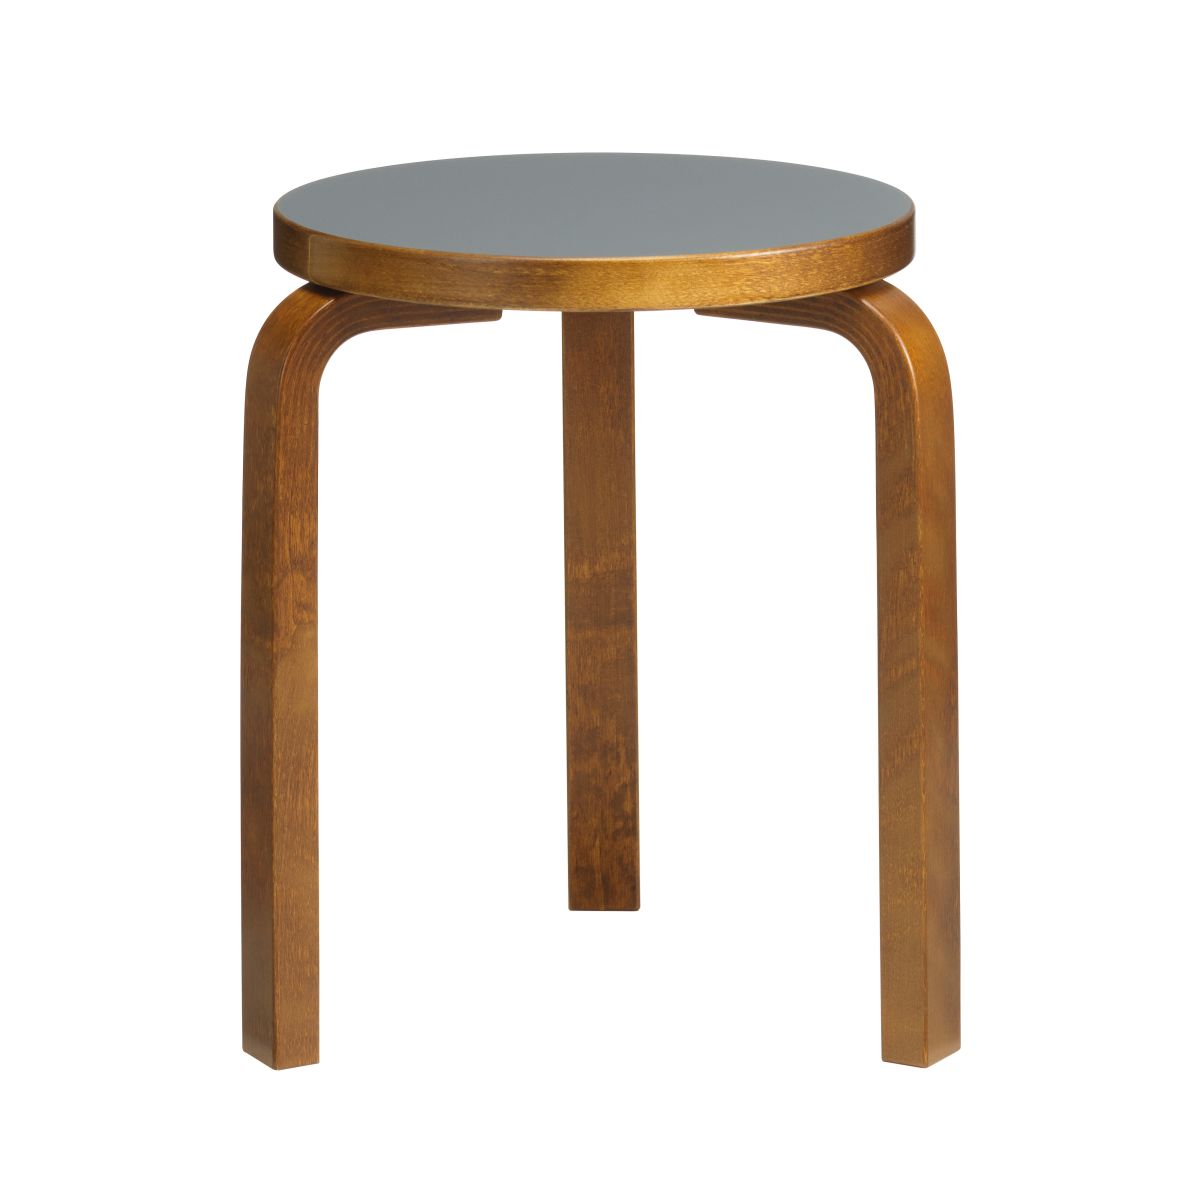 Stool_60_walnut_stain_pewter_linoleum_F